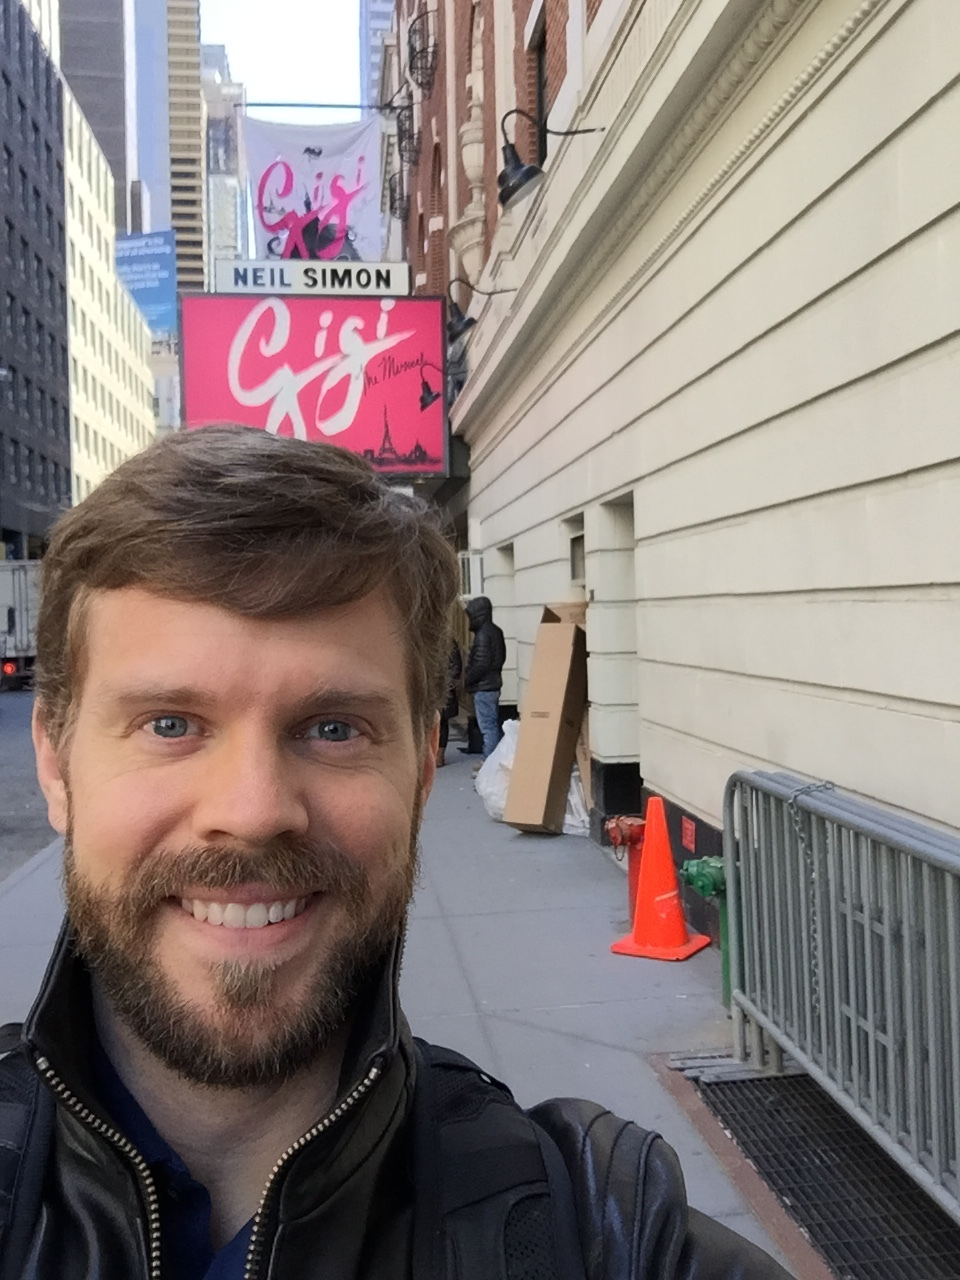 Standing in front of our marquee at the Neil Simon Theatre on W 52nd St. Can't wait for Opening!